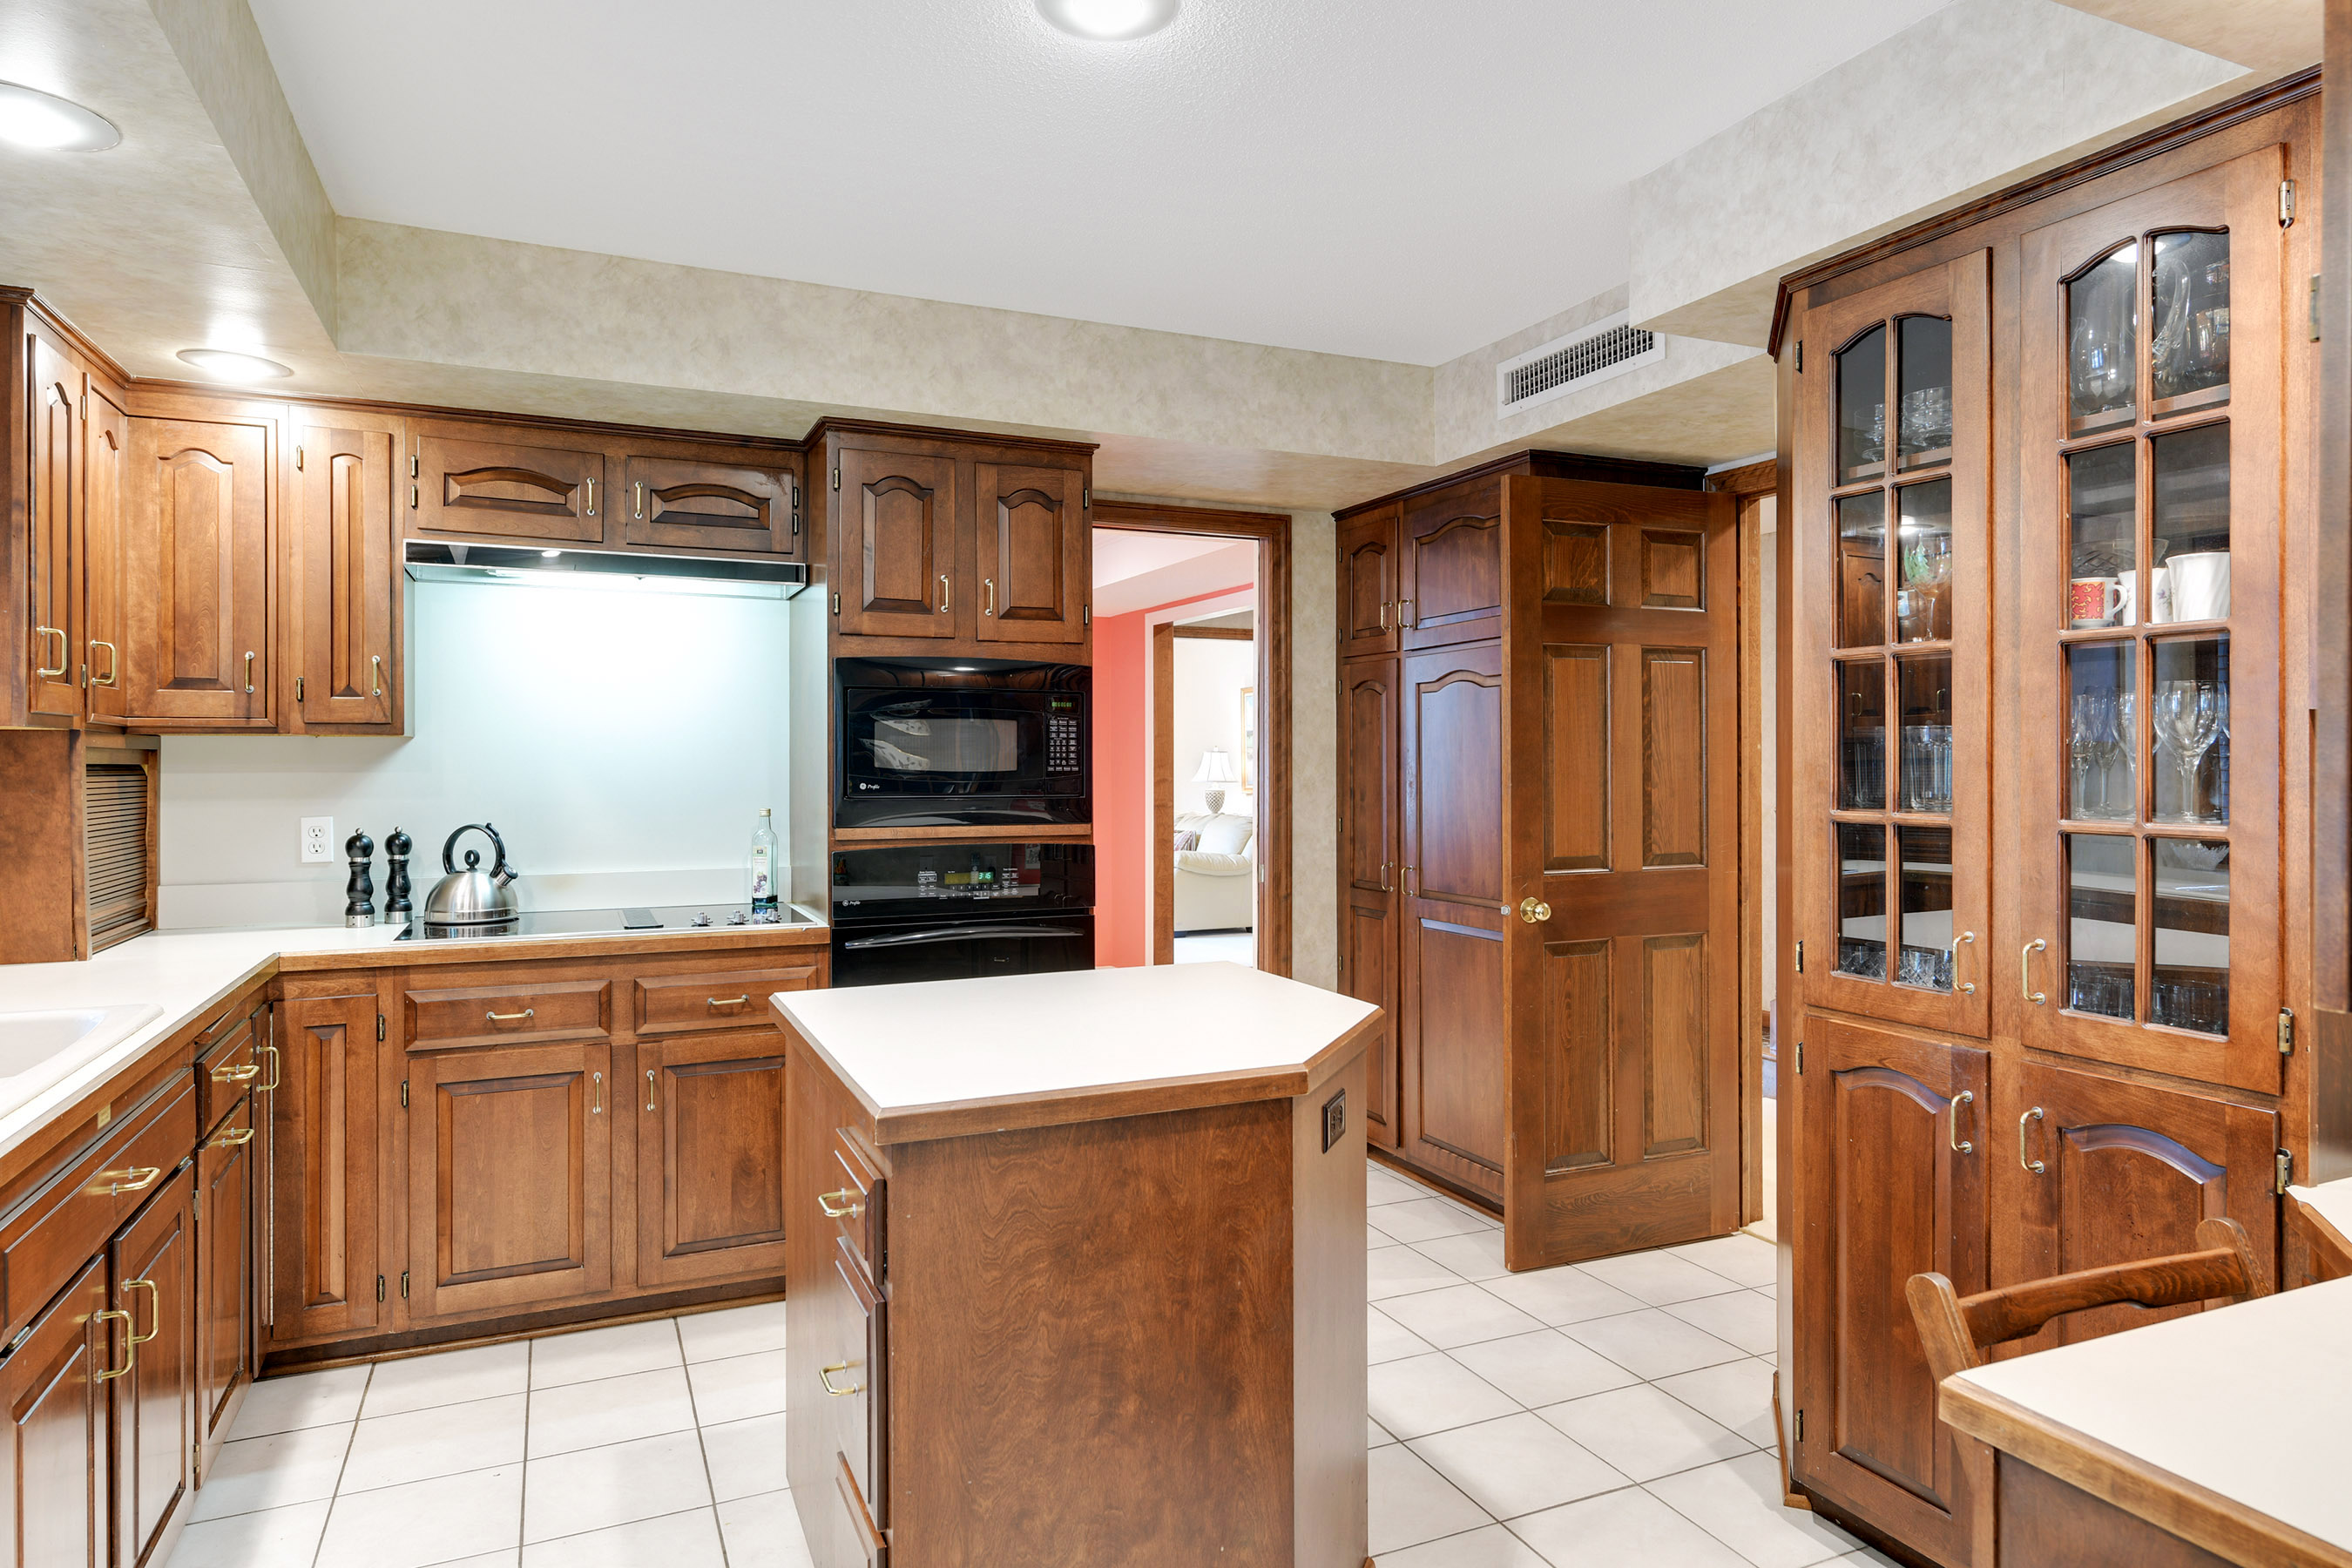 Updated appliances, a planning desk, pantry cabinet & pullout drawers